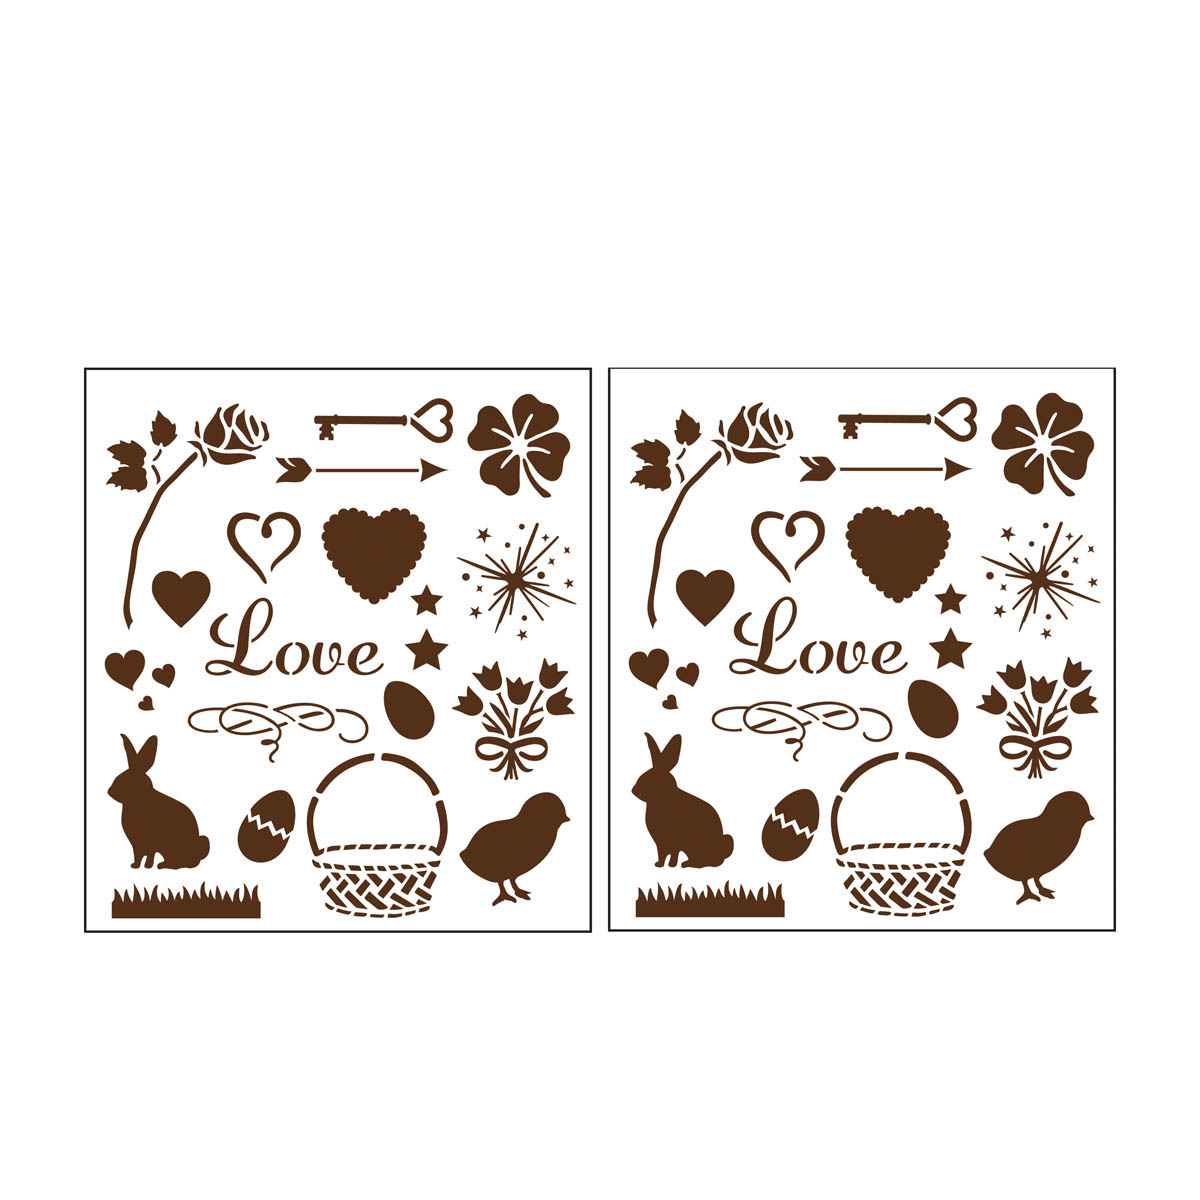 Martha Stewart Crafts ® Holiday Icons Laser-Cut Stencils